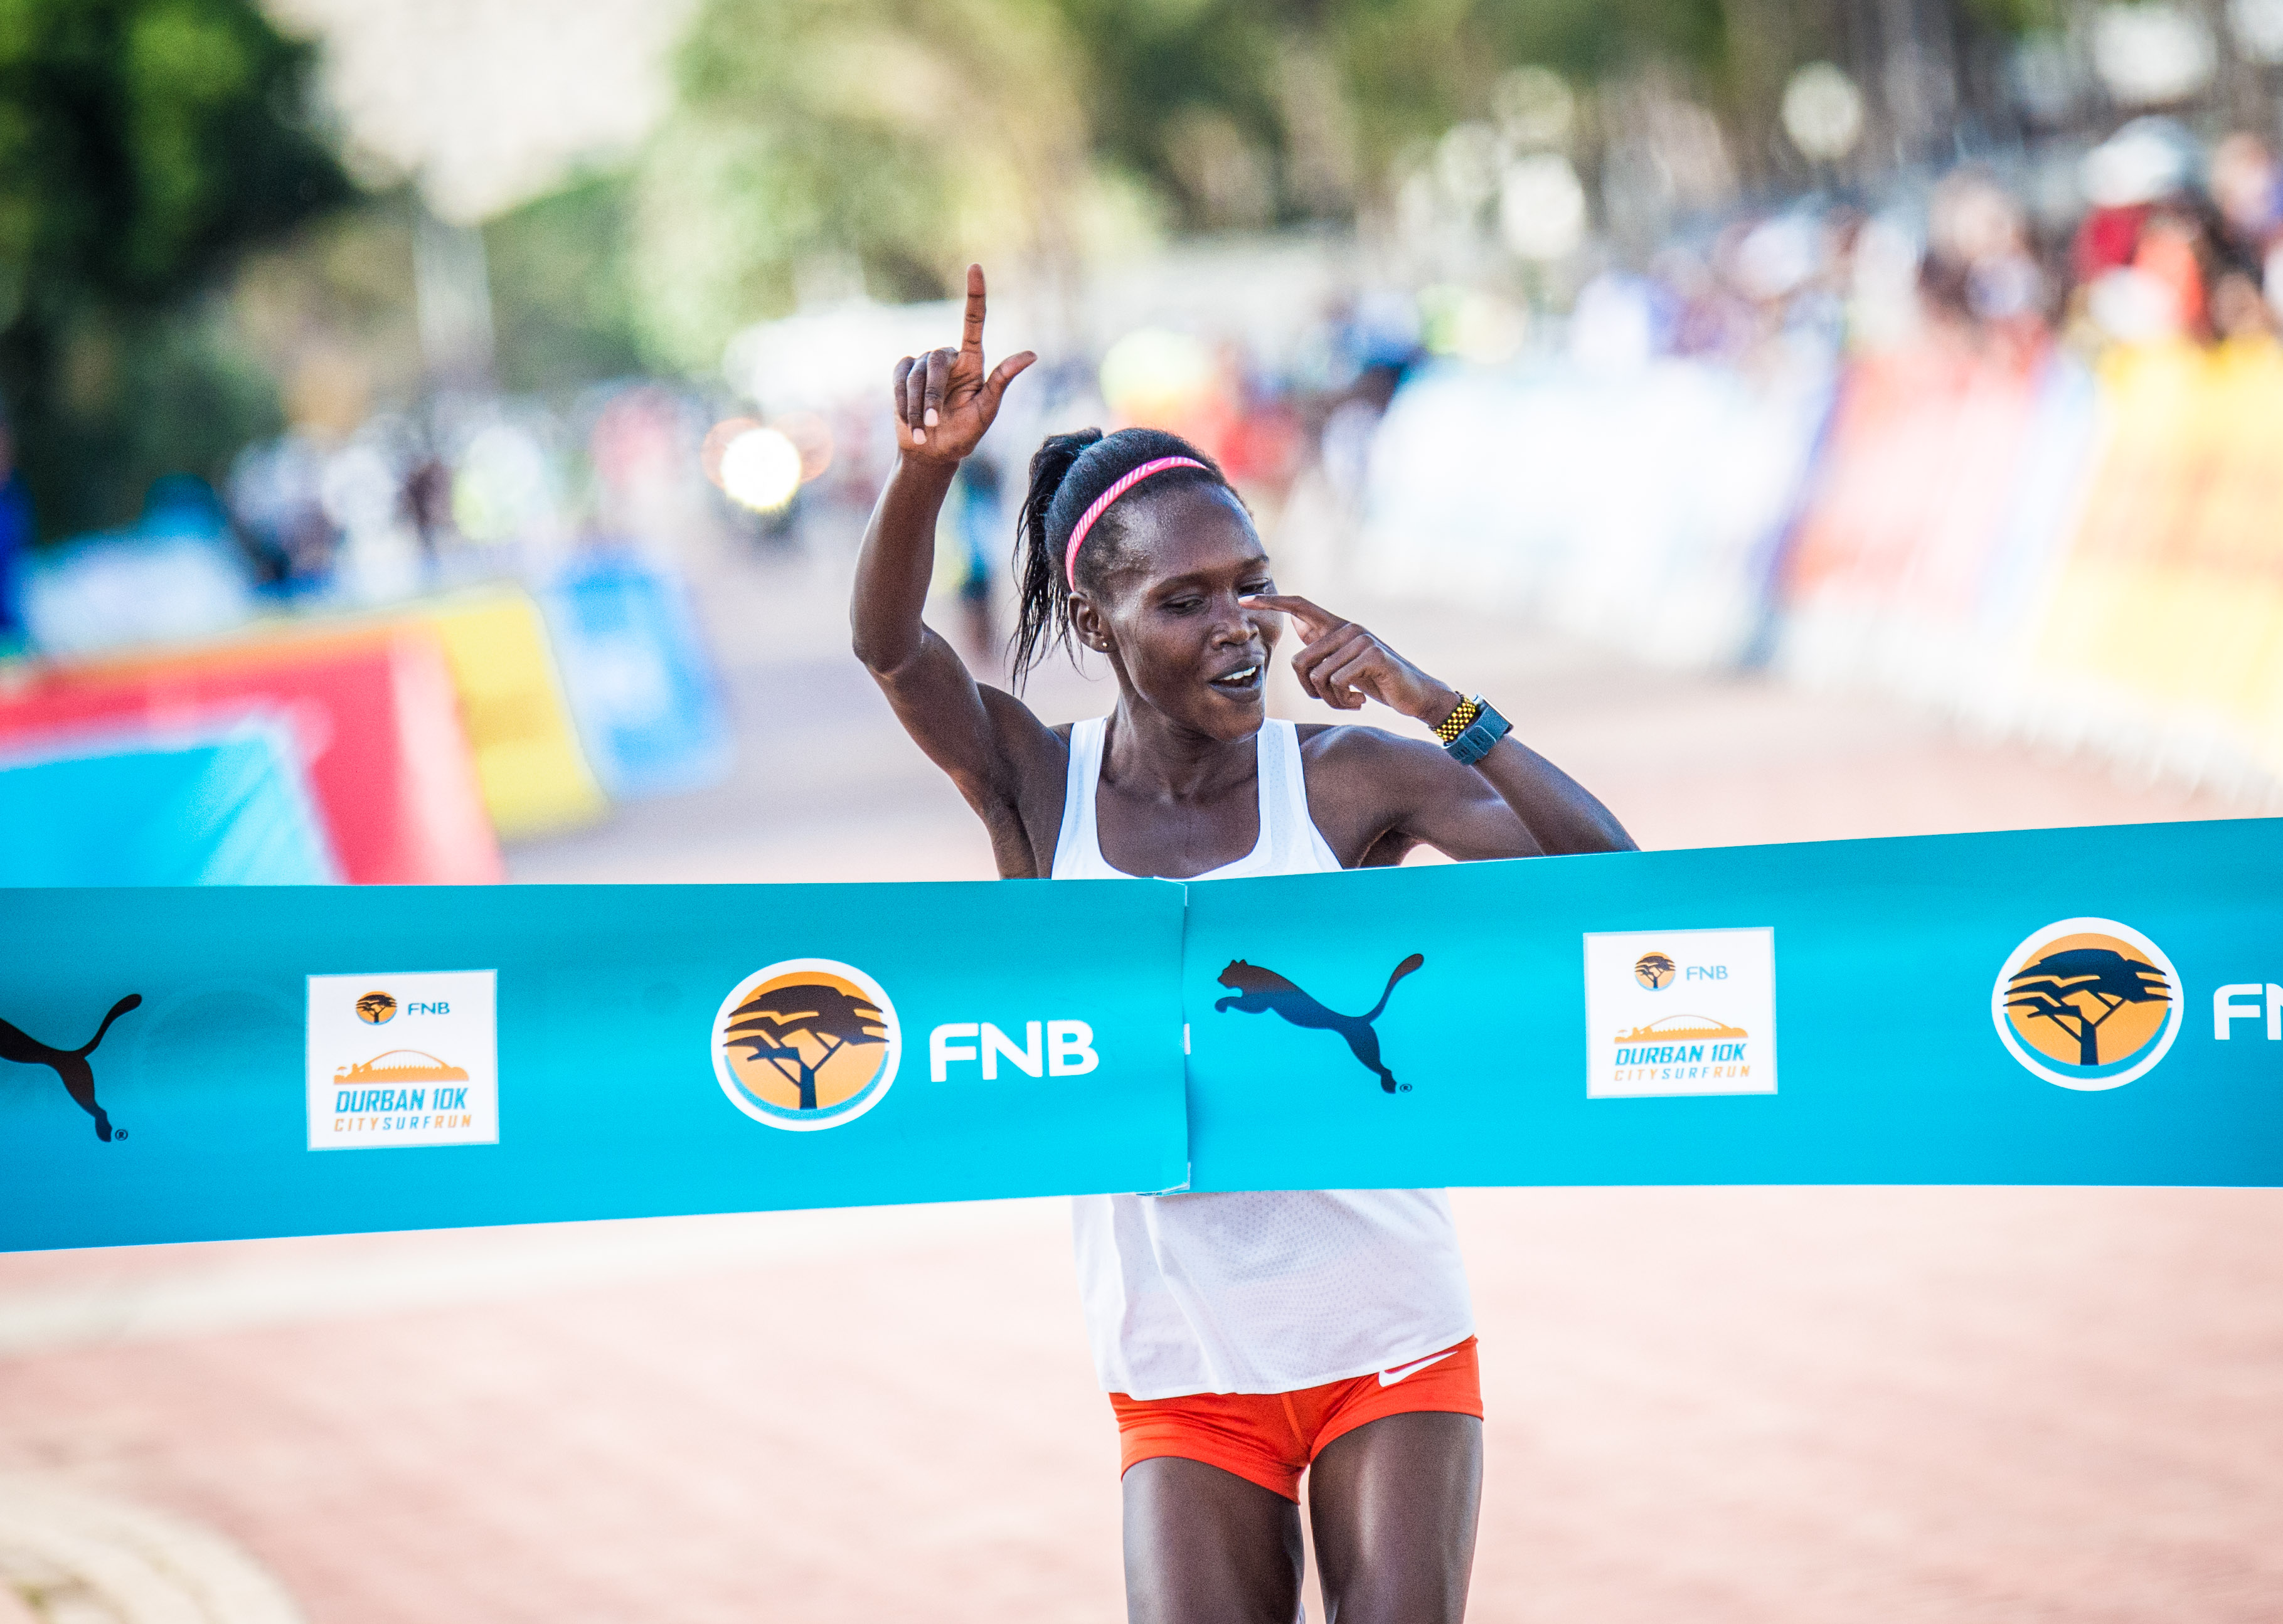 Stella Chesang claims victory at the 2018 FNB Durban 10K CITYSURFRUN.  Photo Credit:  Tobias Ginsberg